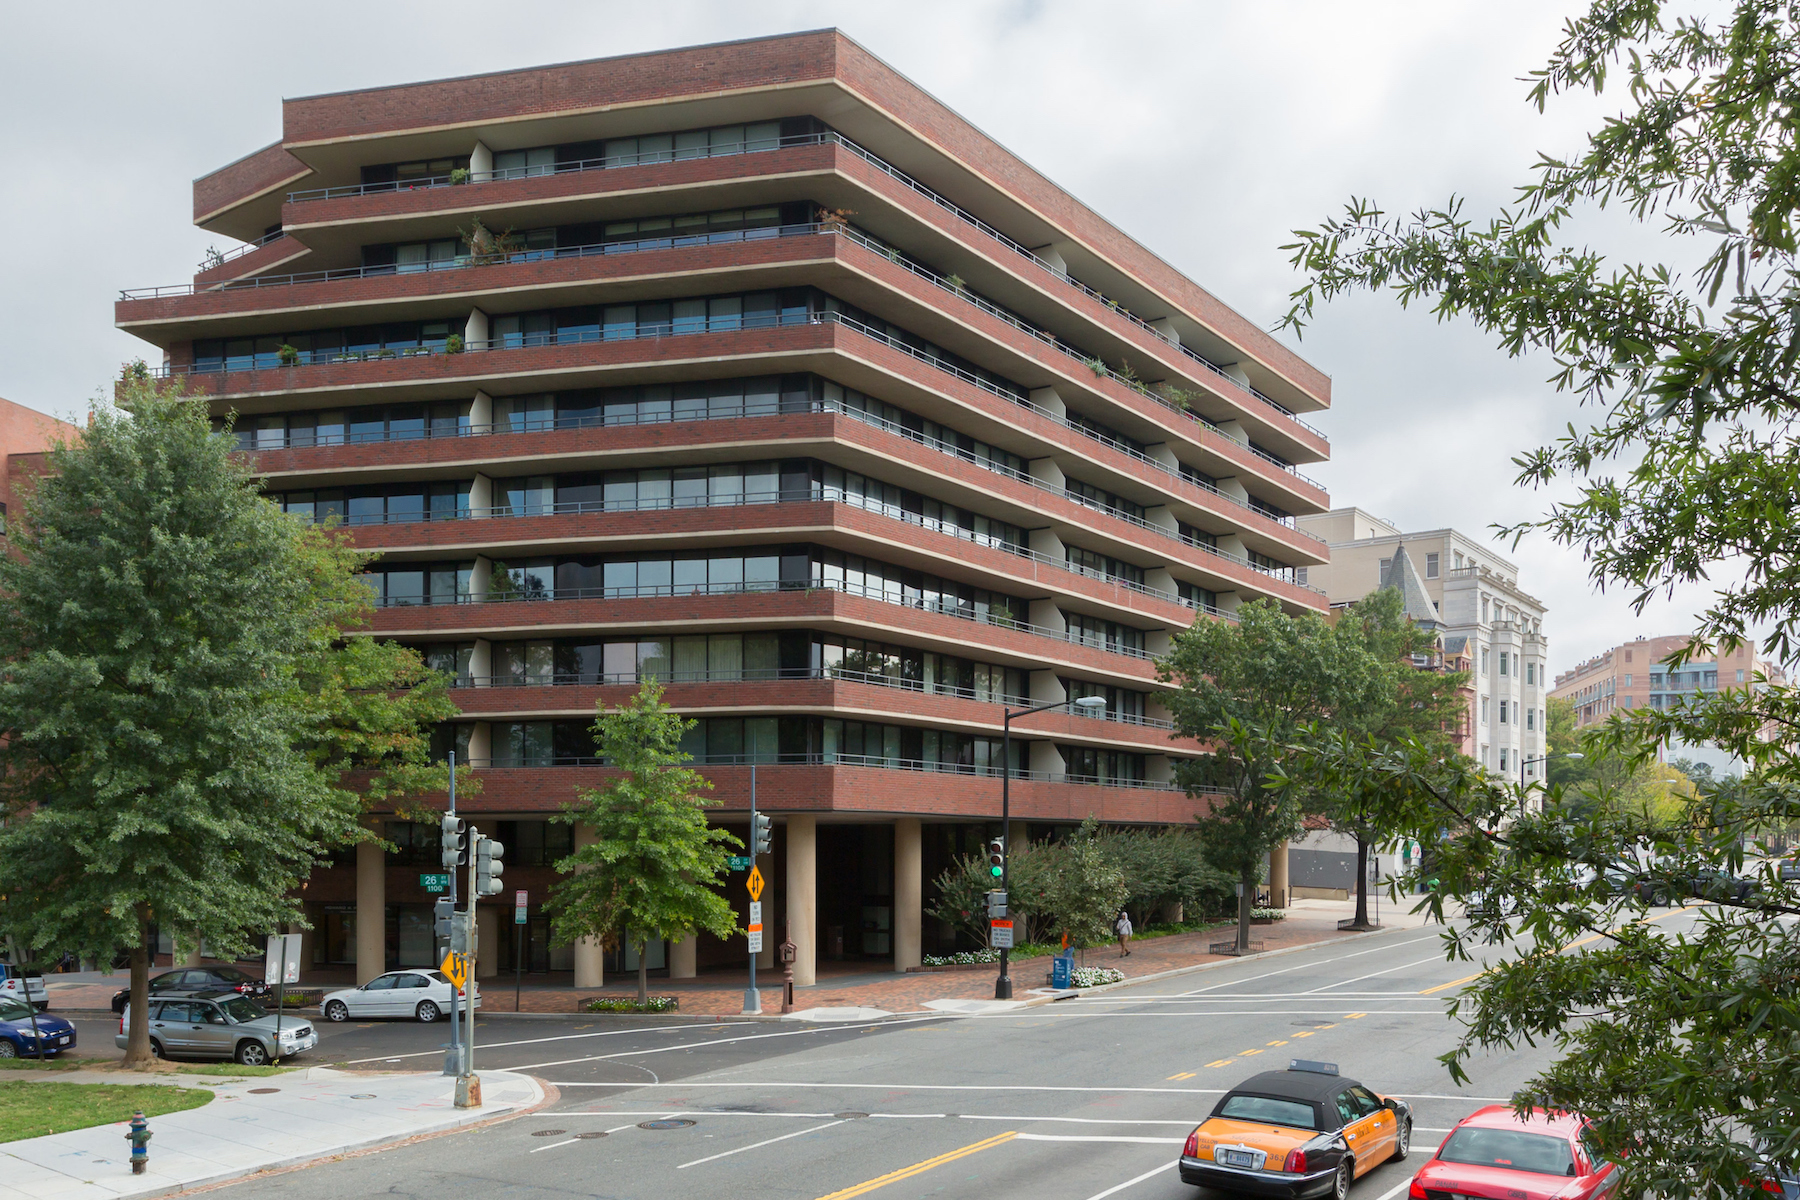 Commercial for Sale at 2555 Pennsylvania Ave Nw #1c 2555 Pennsylvania Ave Nw #1c Washington, District Of Columbia 20037 United States